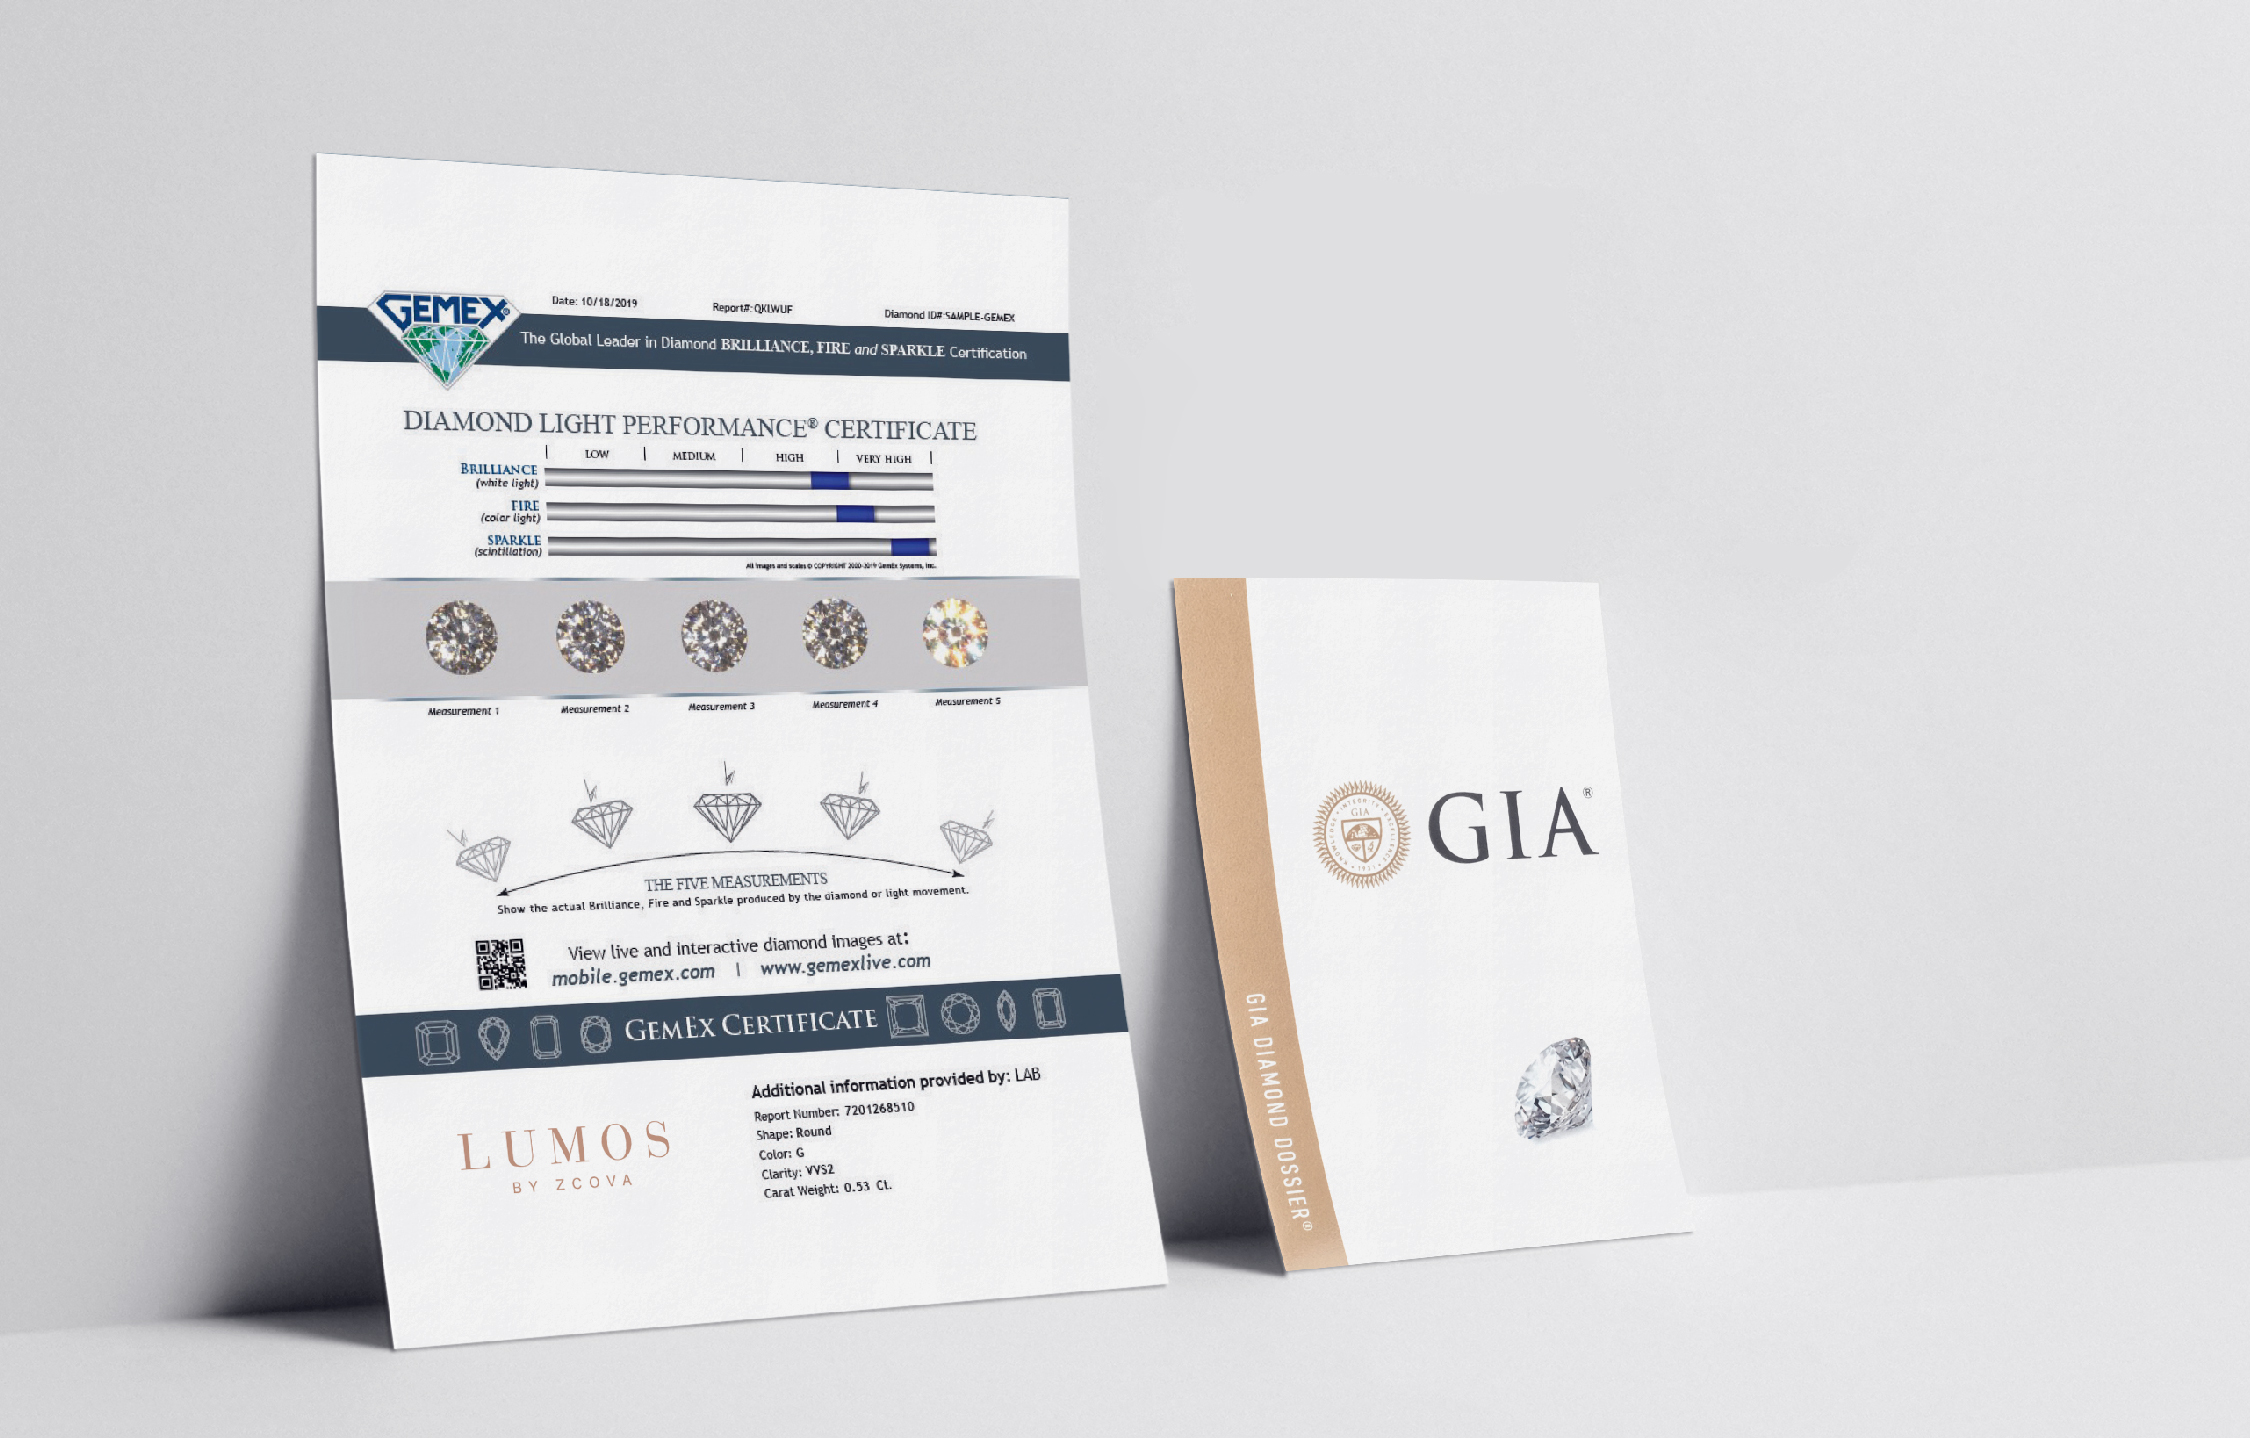 Dual certificates from GIA & GemEx